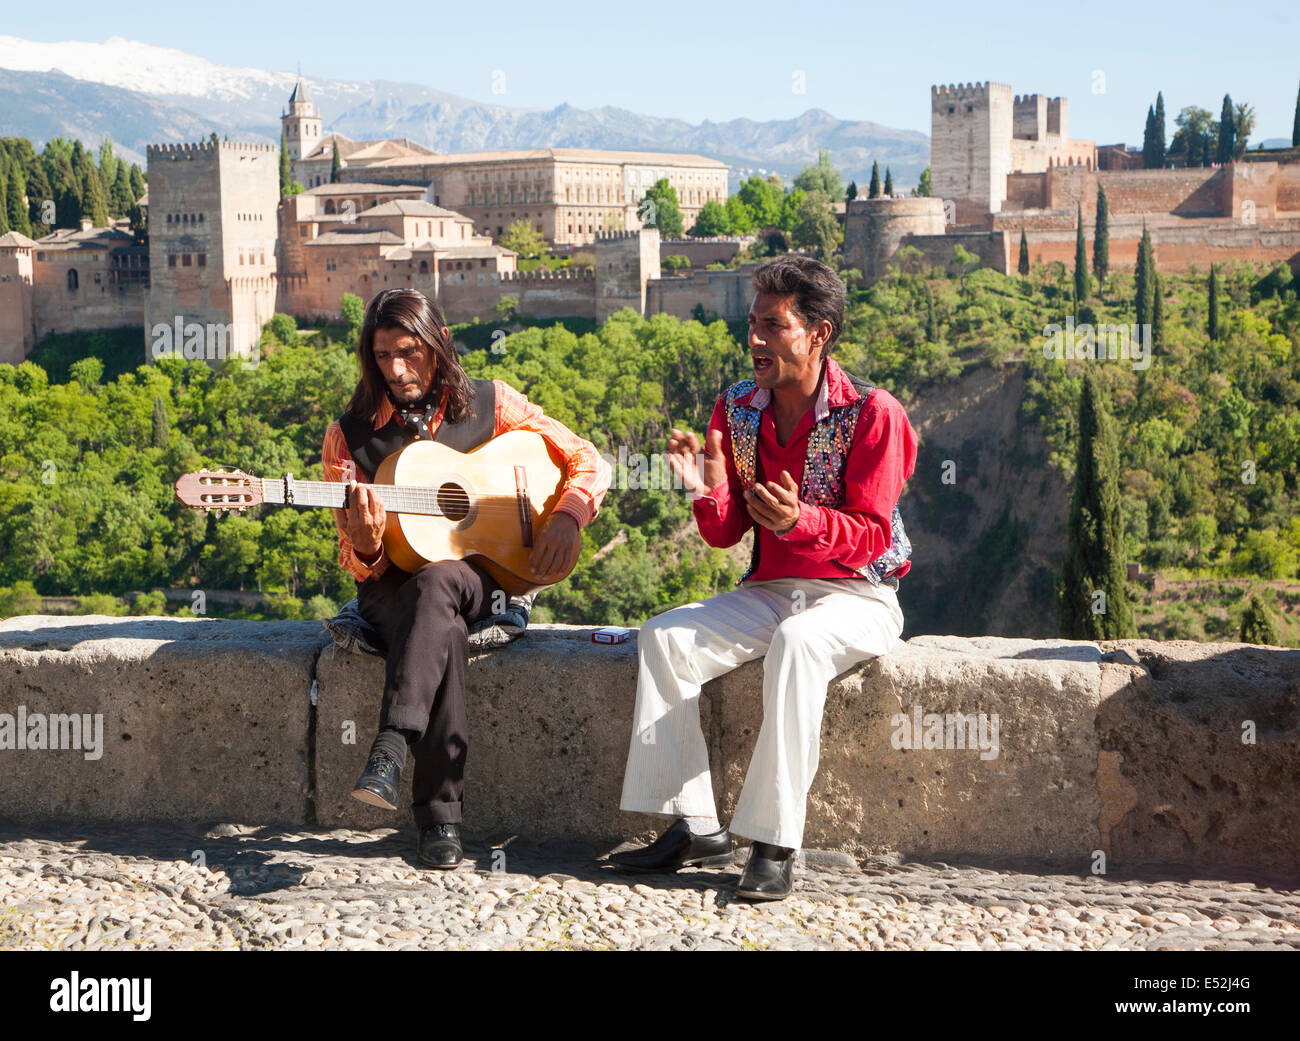 Flamenco musicians play with a backdrop of snow capped Sierra Nevada mountains and the Alhambra, Granada, Spain - Stock Image